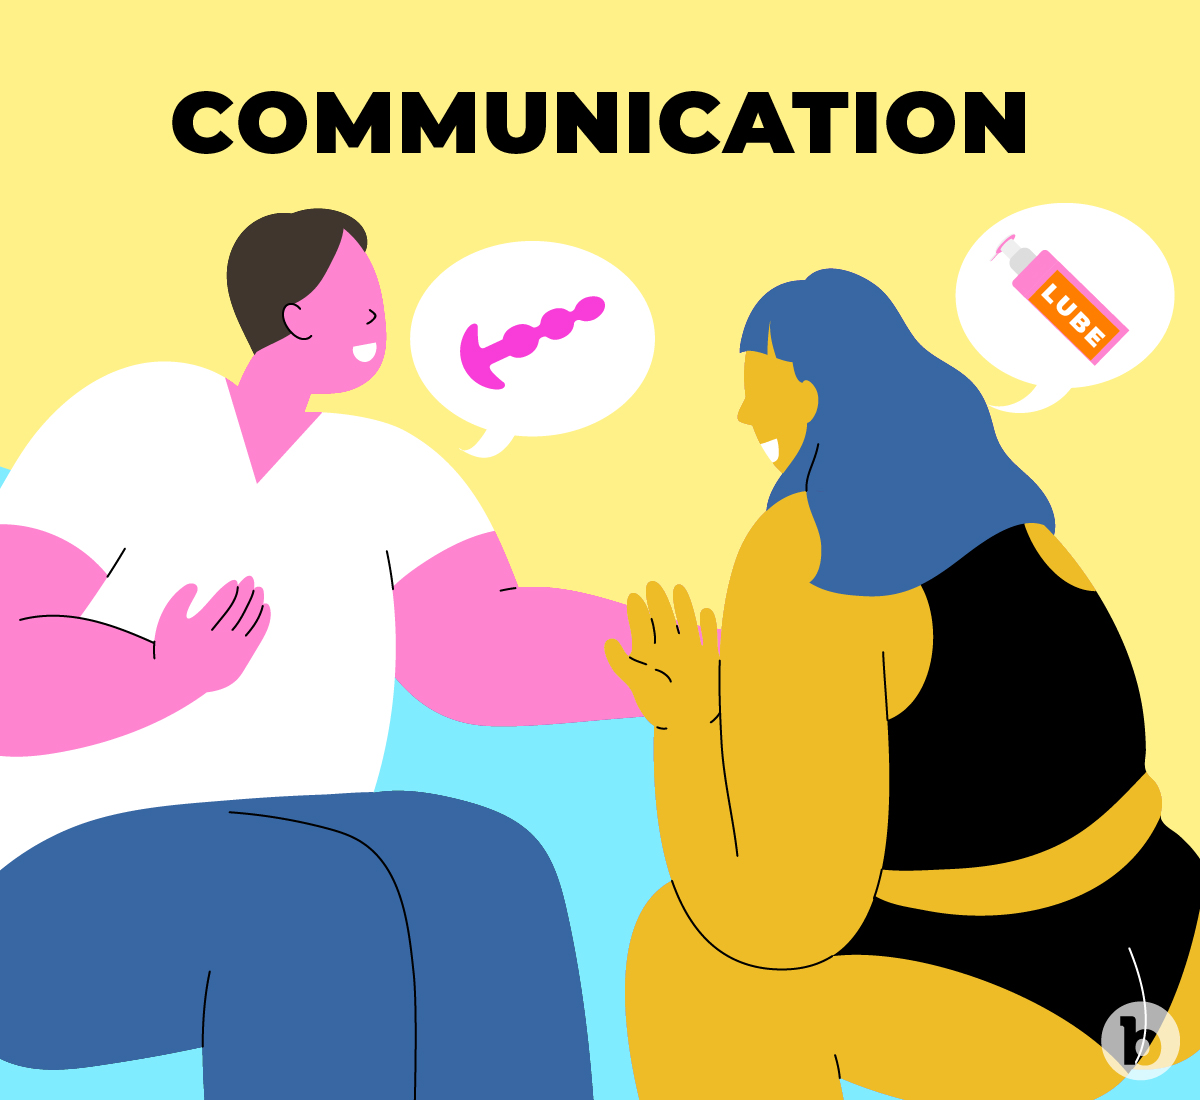 Communication is essential when it comes to pegging and anal play in general